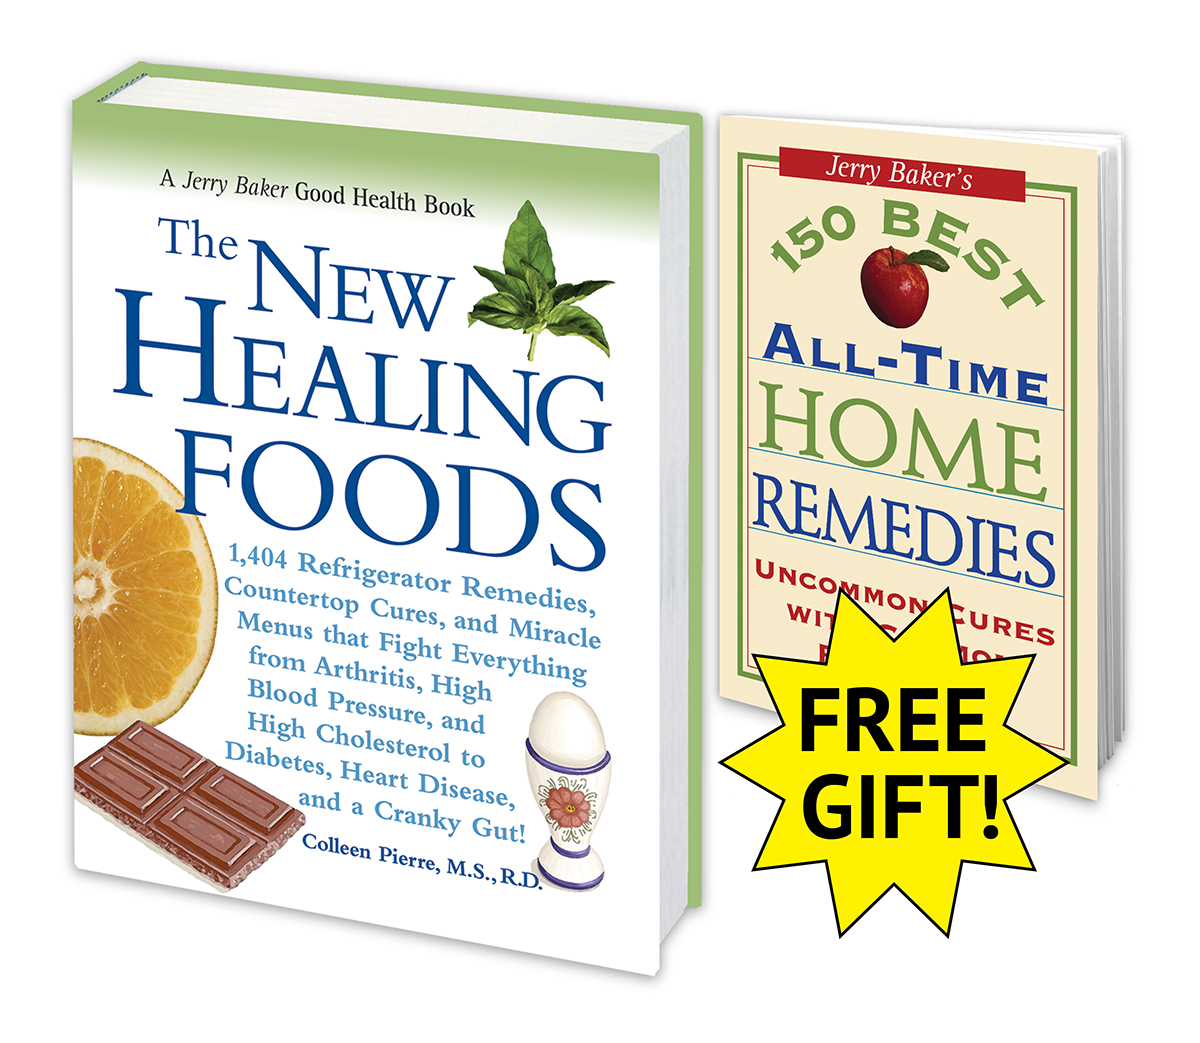 The New Healing Foods